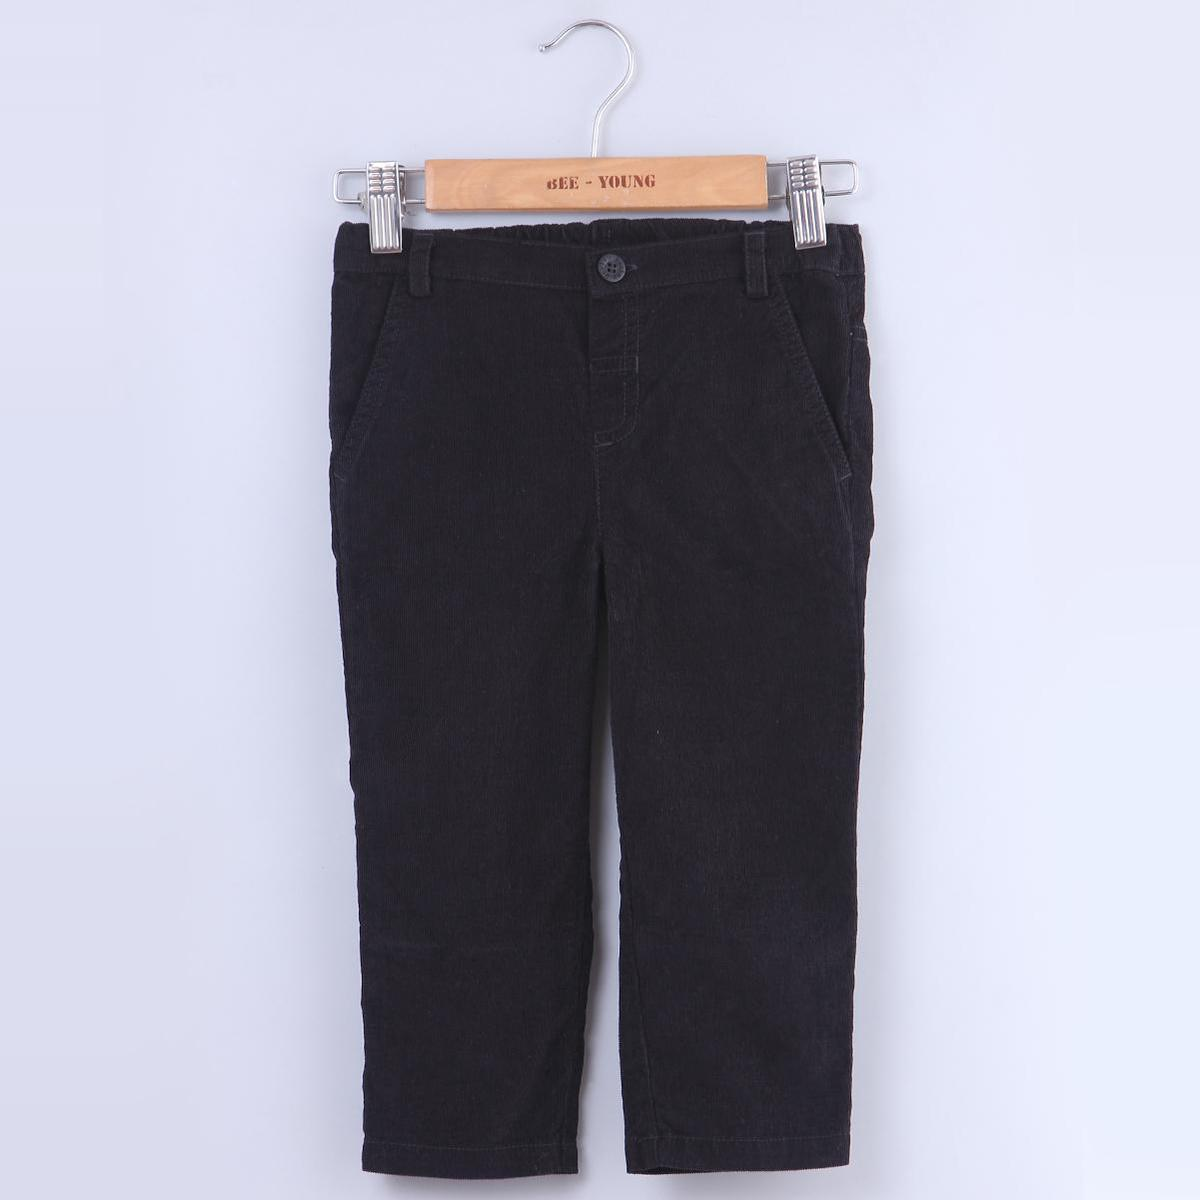 Beebay - Black Colored Jet Black Corduroy Cotton Stretchable Trousers For Infants Boys